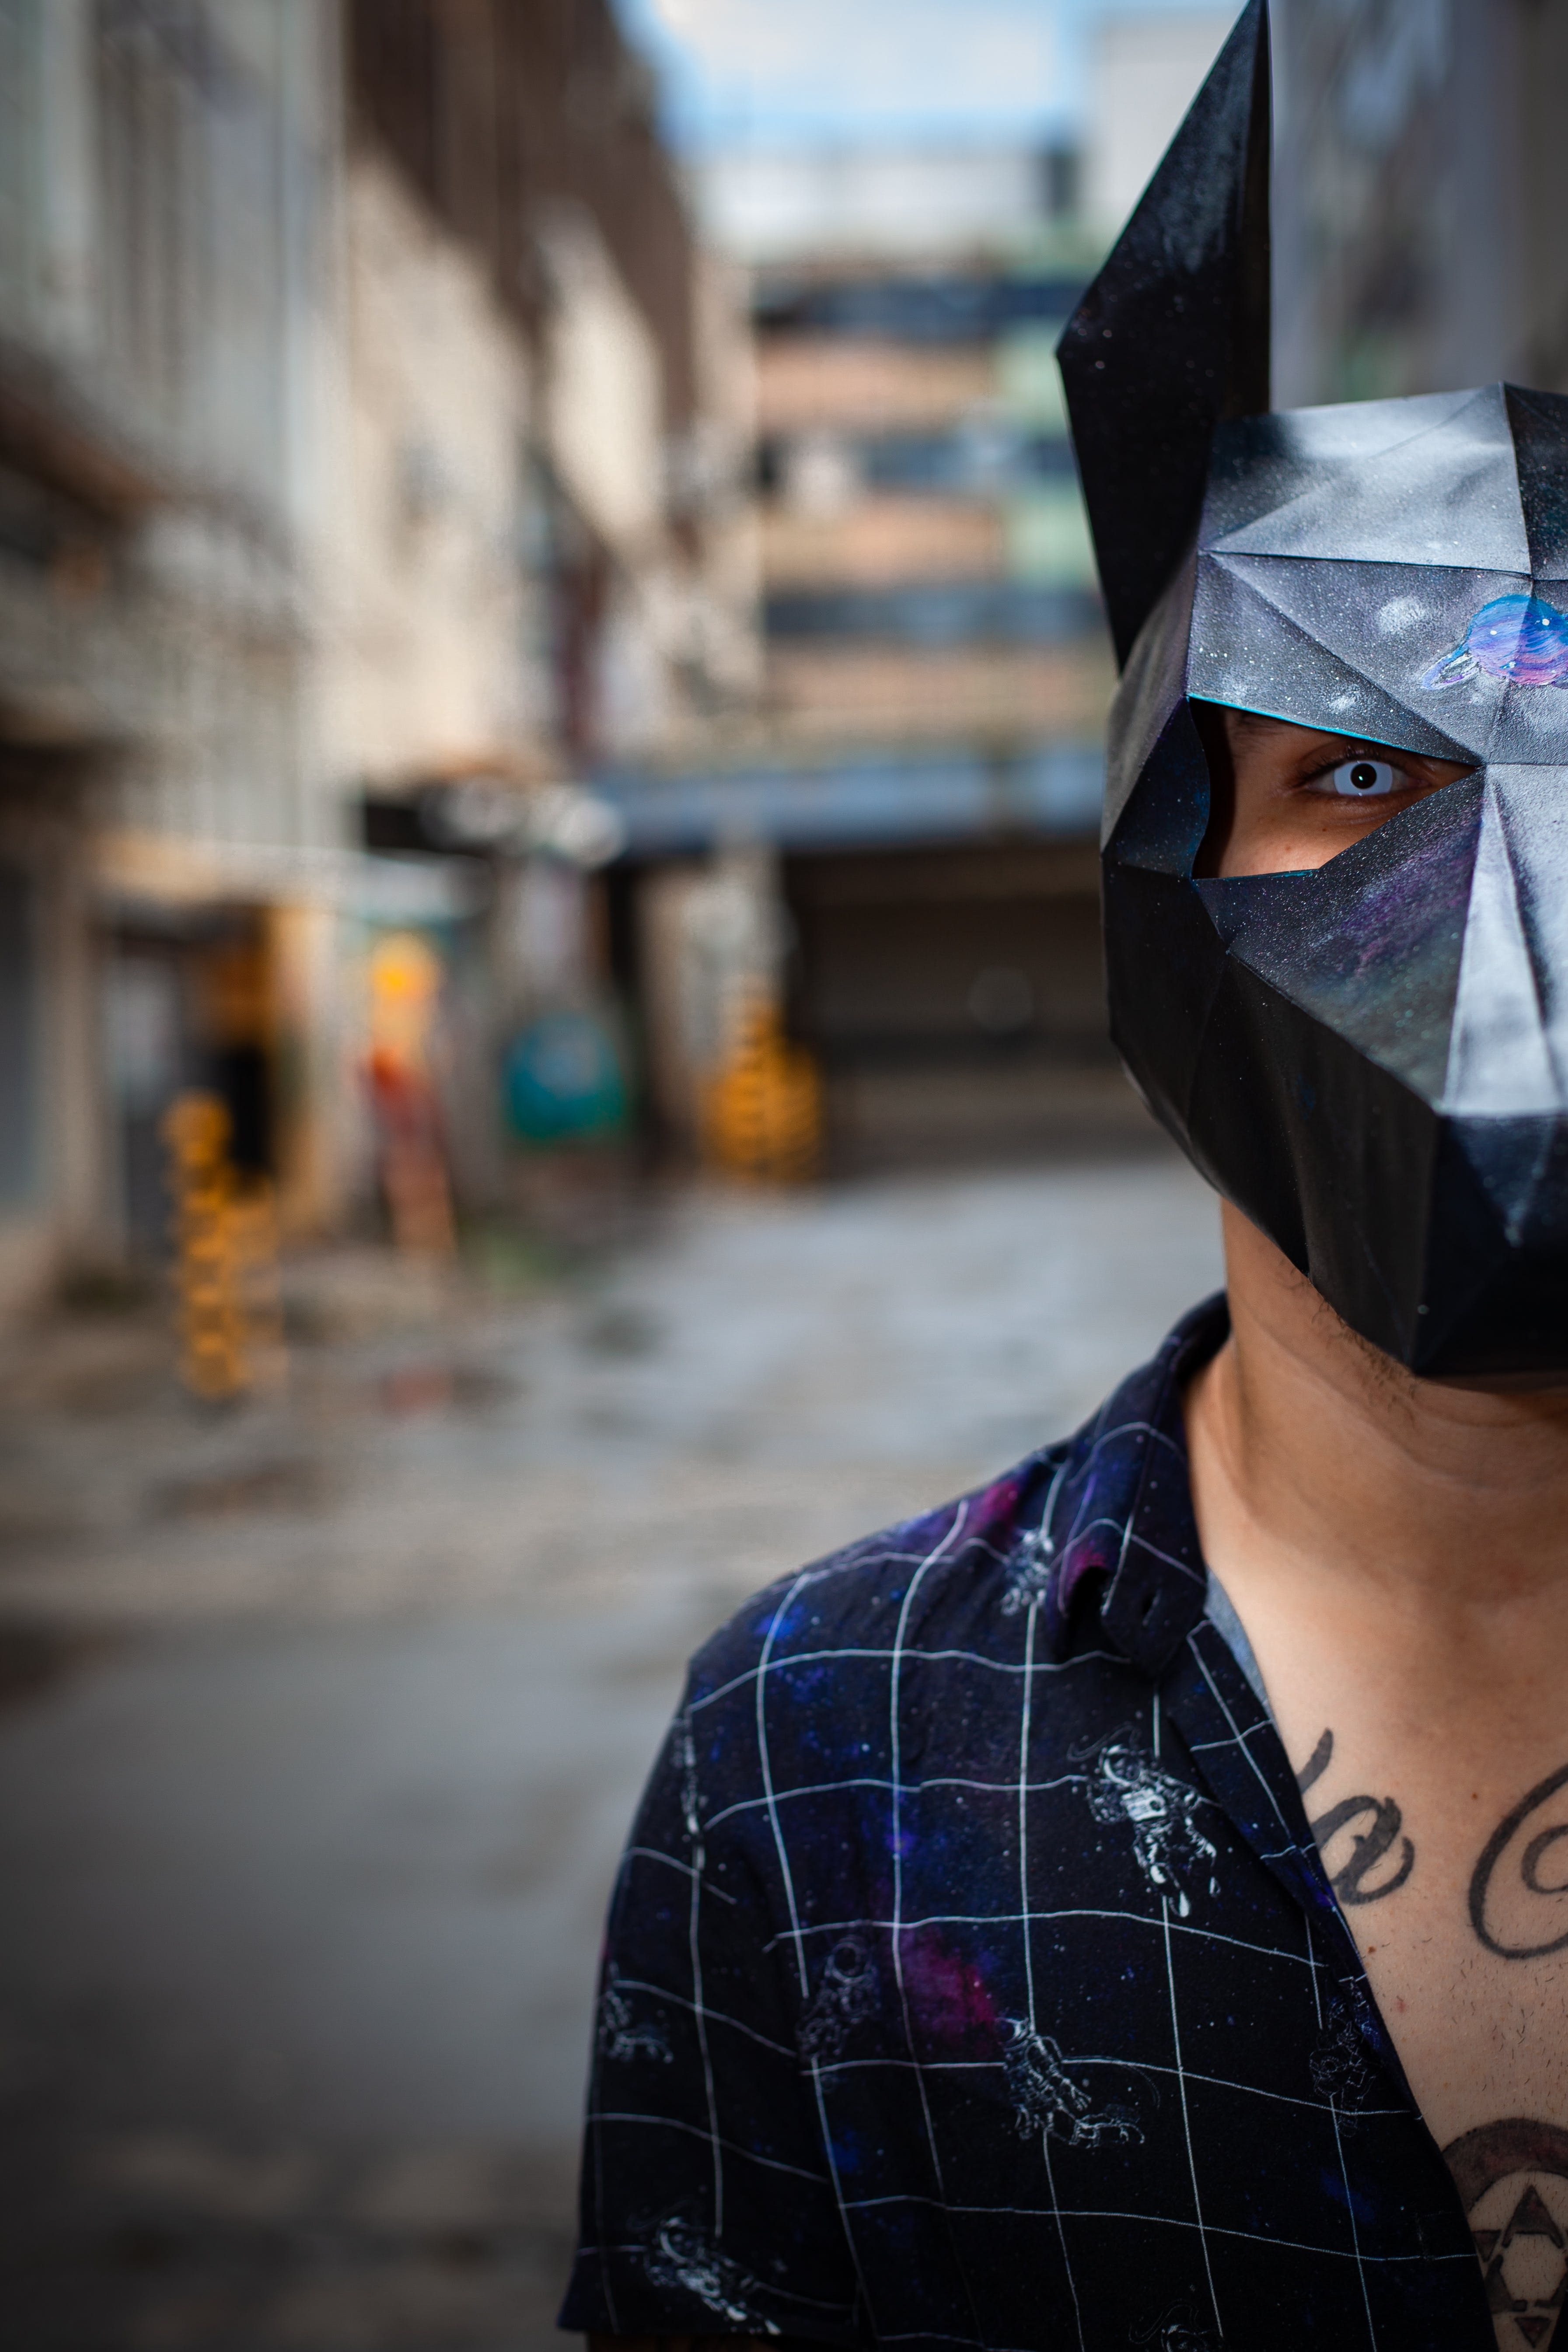 Man in Black and Gray Collared Top Wearing a Mask